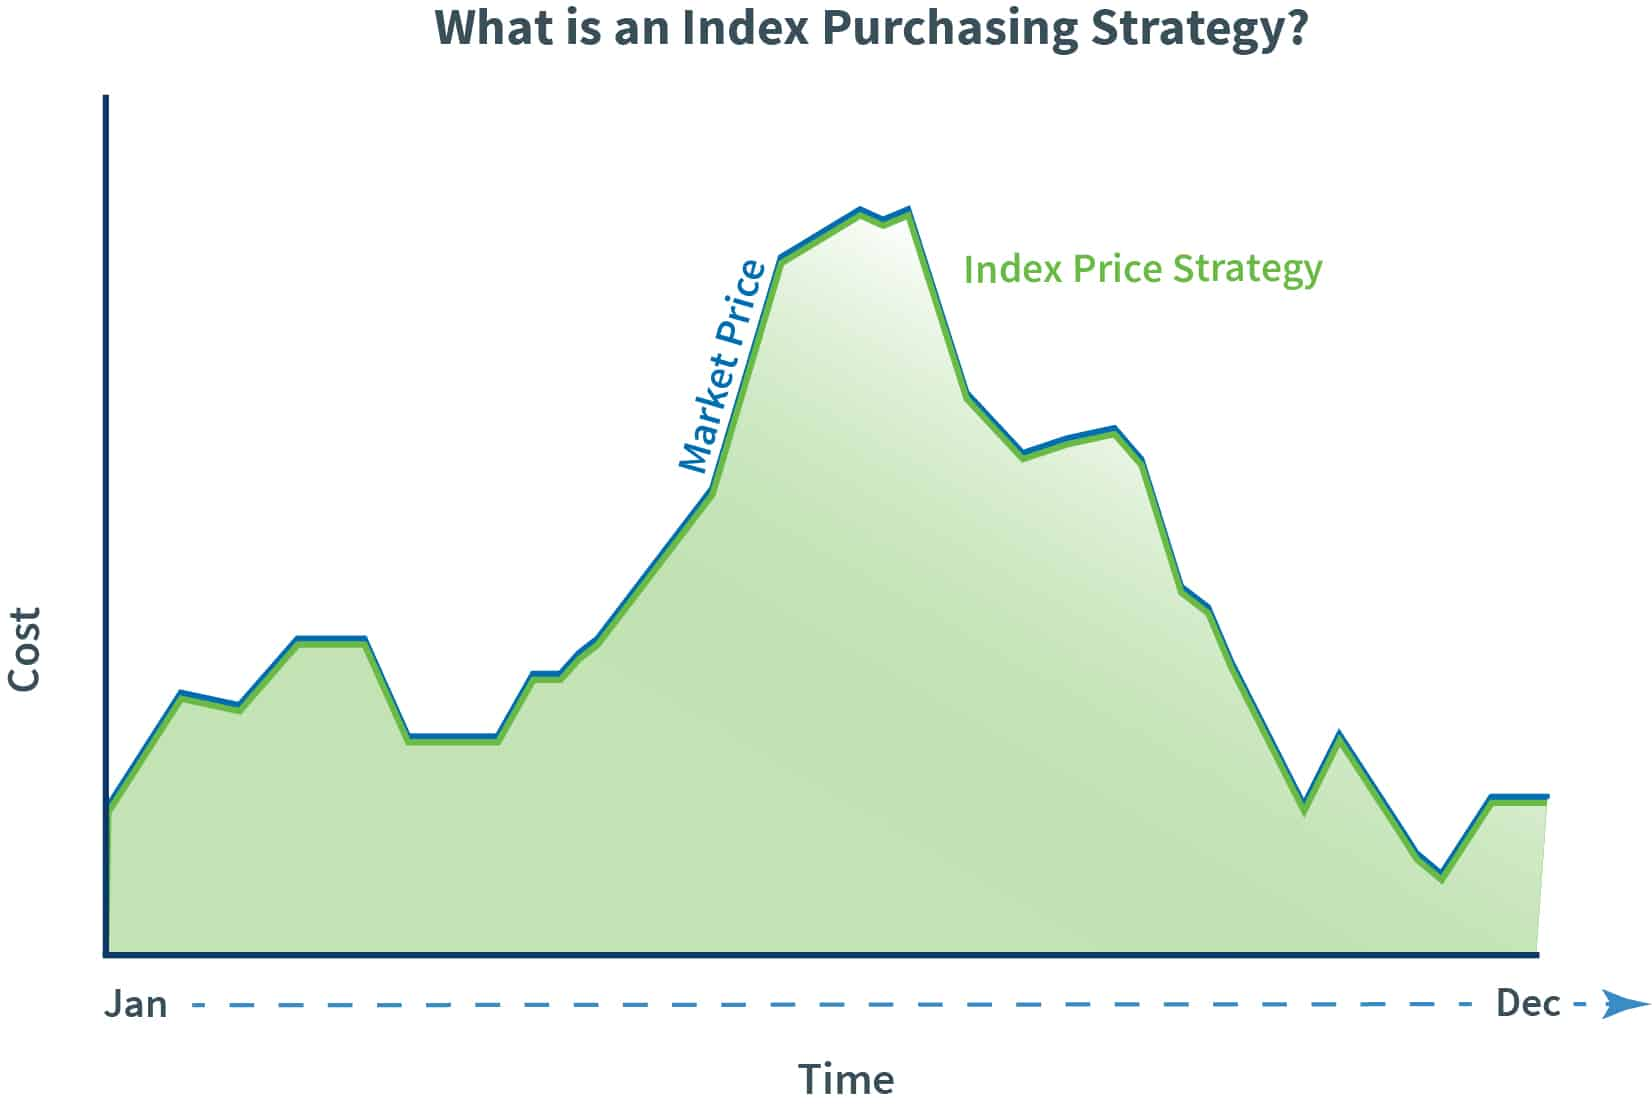 Index Purchasing Strategy graph